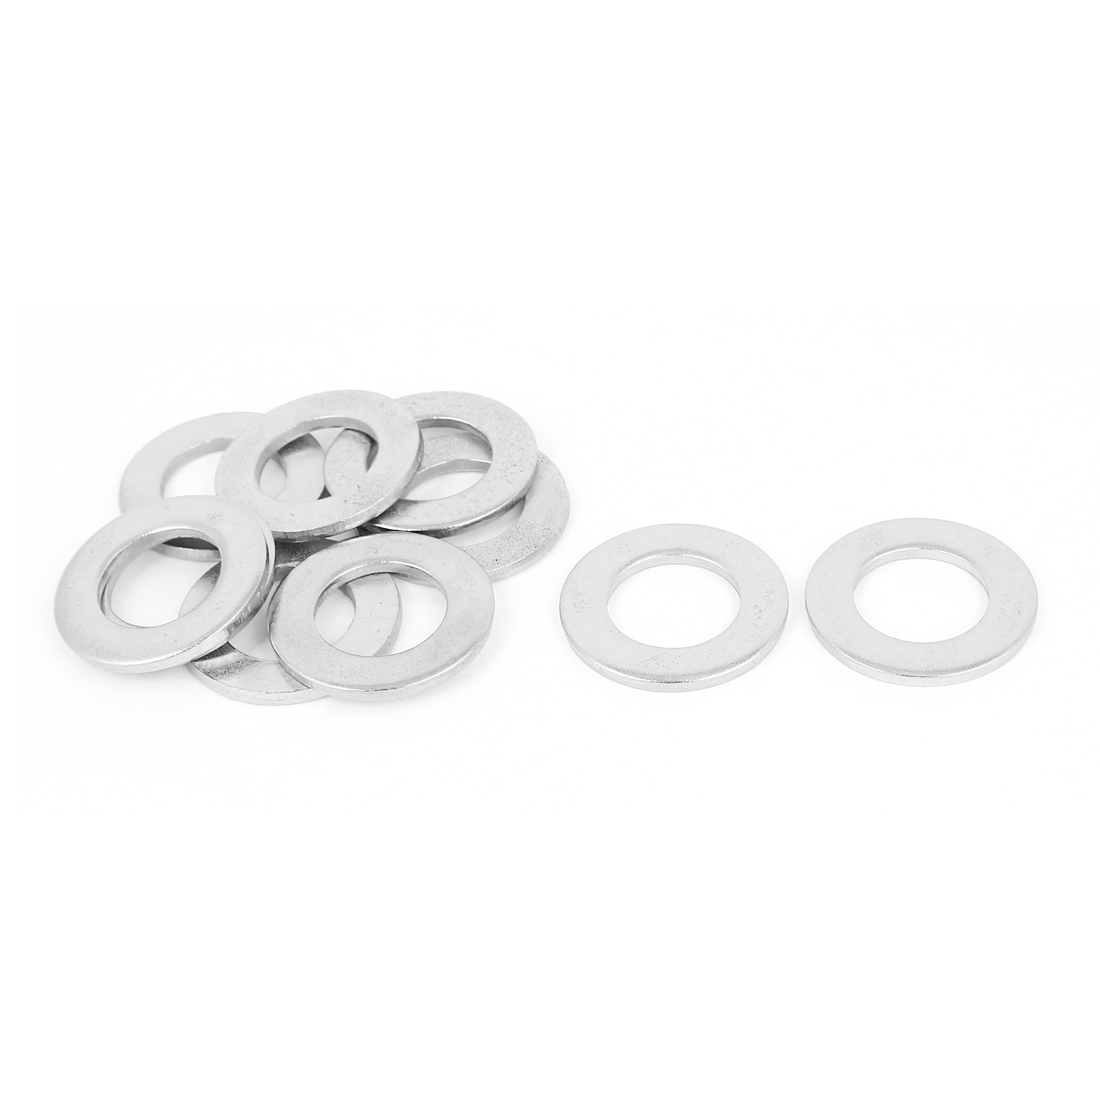 """10pcs Silver Tone 304 Stainless Steel Flat Washer 3/4"""" for Screws Bolts"""